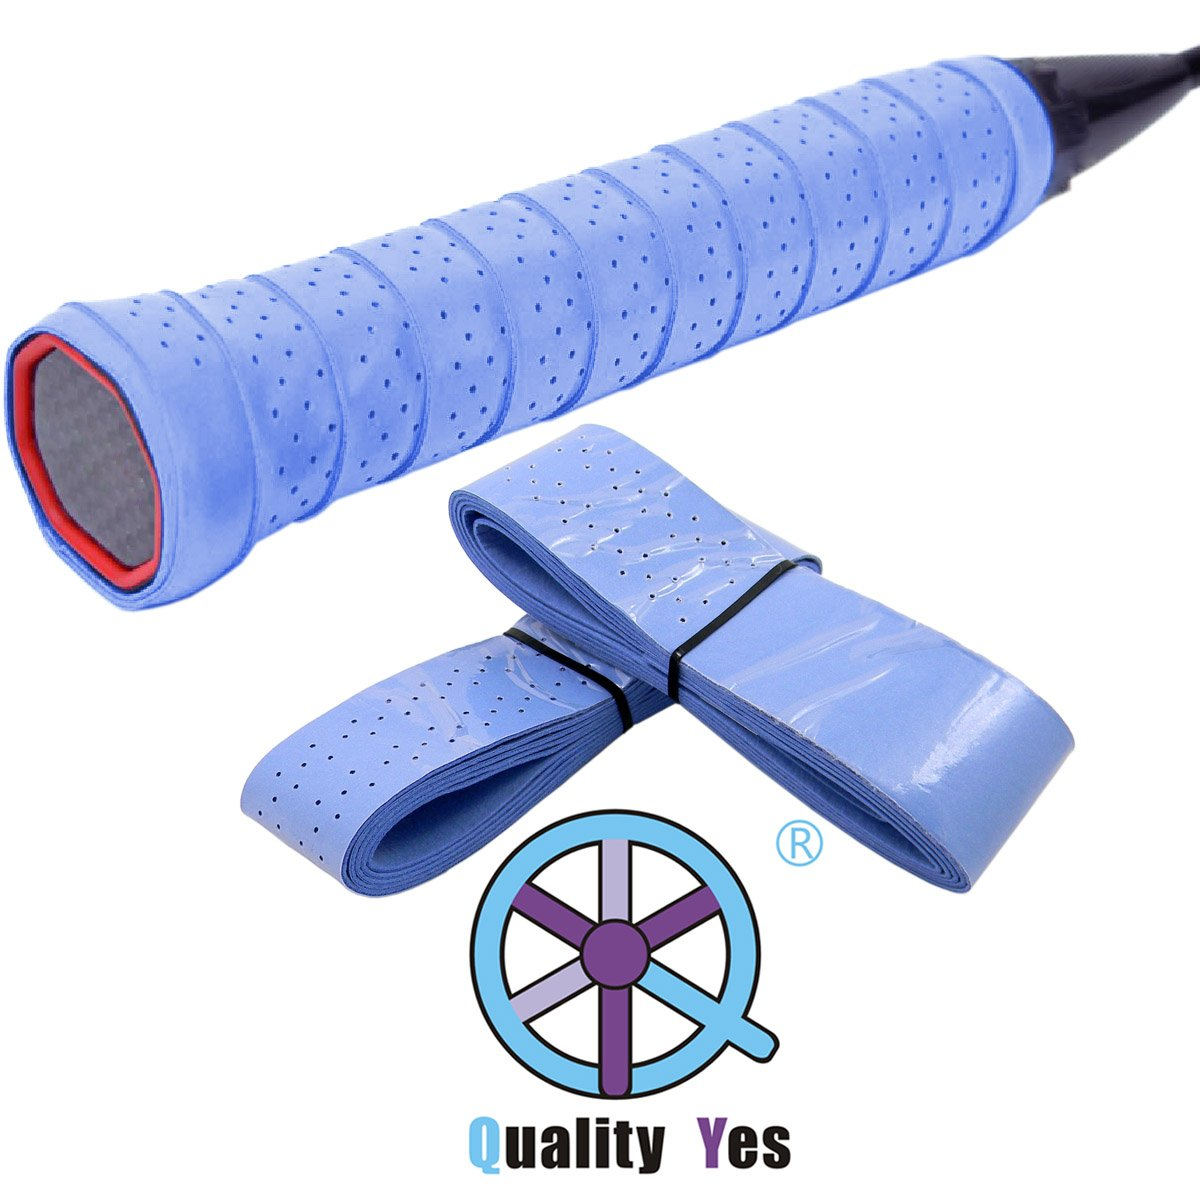 QY 2Pack Widened Perforated Super Absorbent Tennis Racket Overgrip Anti Slip Badminton Racket Tape Wrap Table Tennis Racket Tape, Purple Color